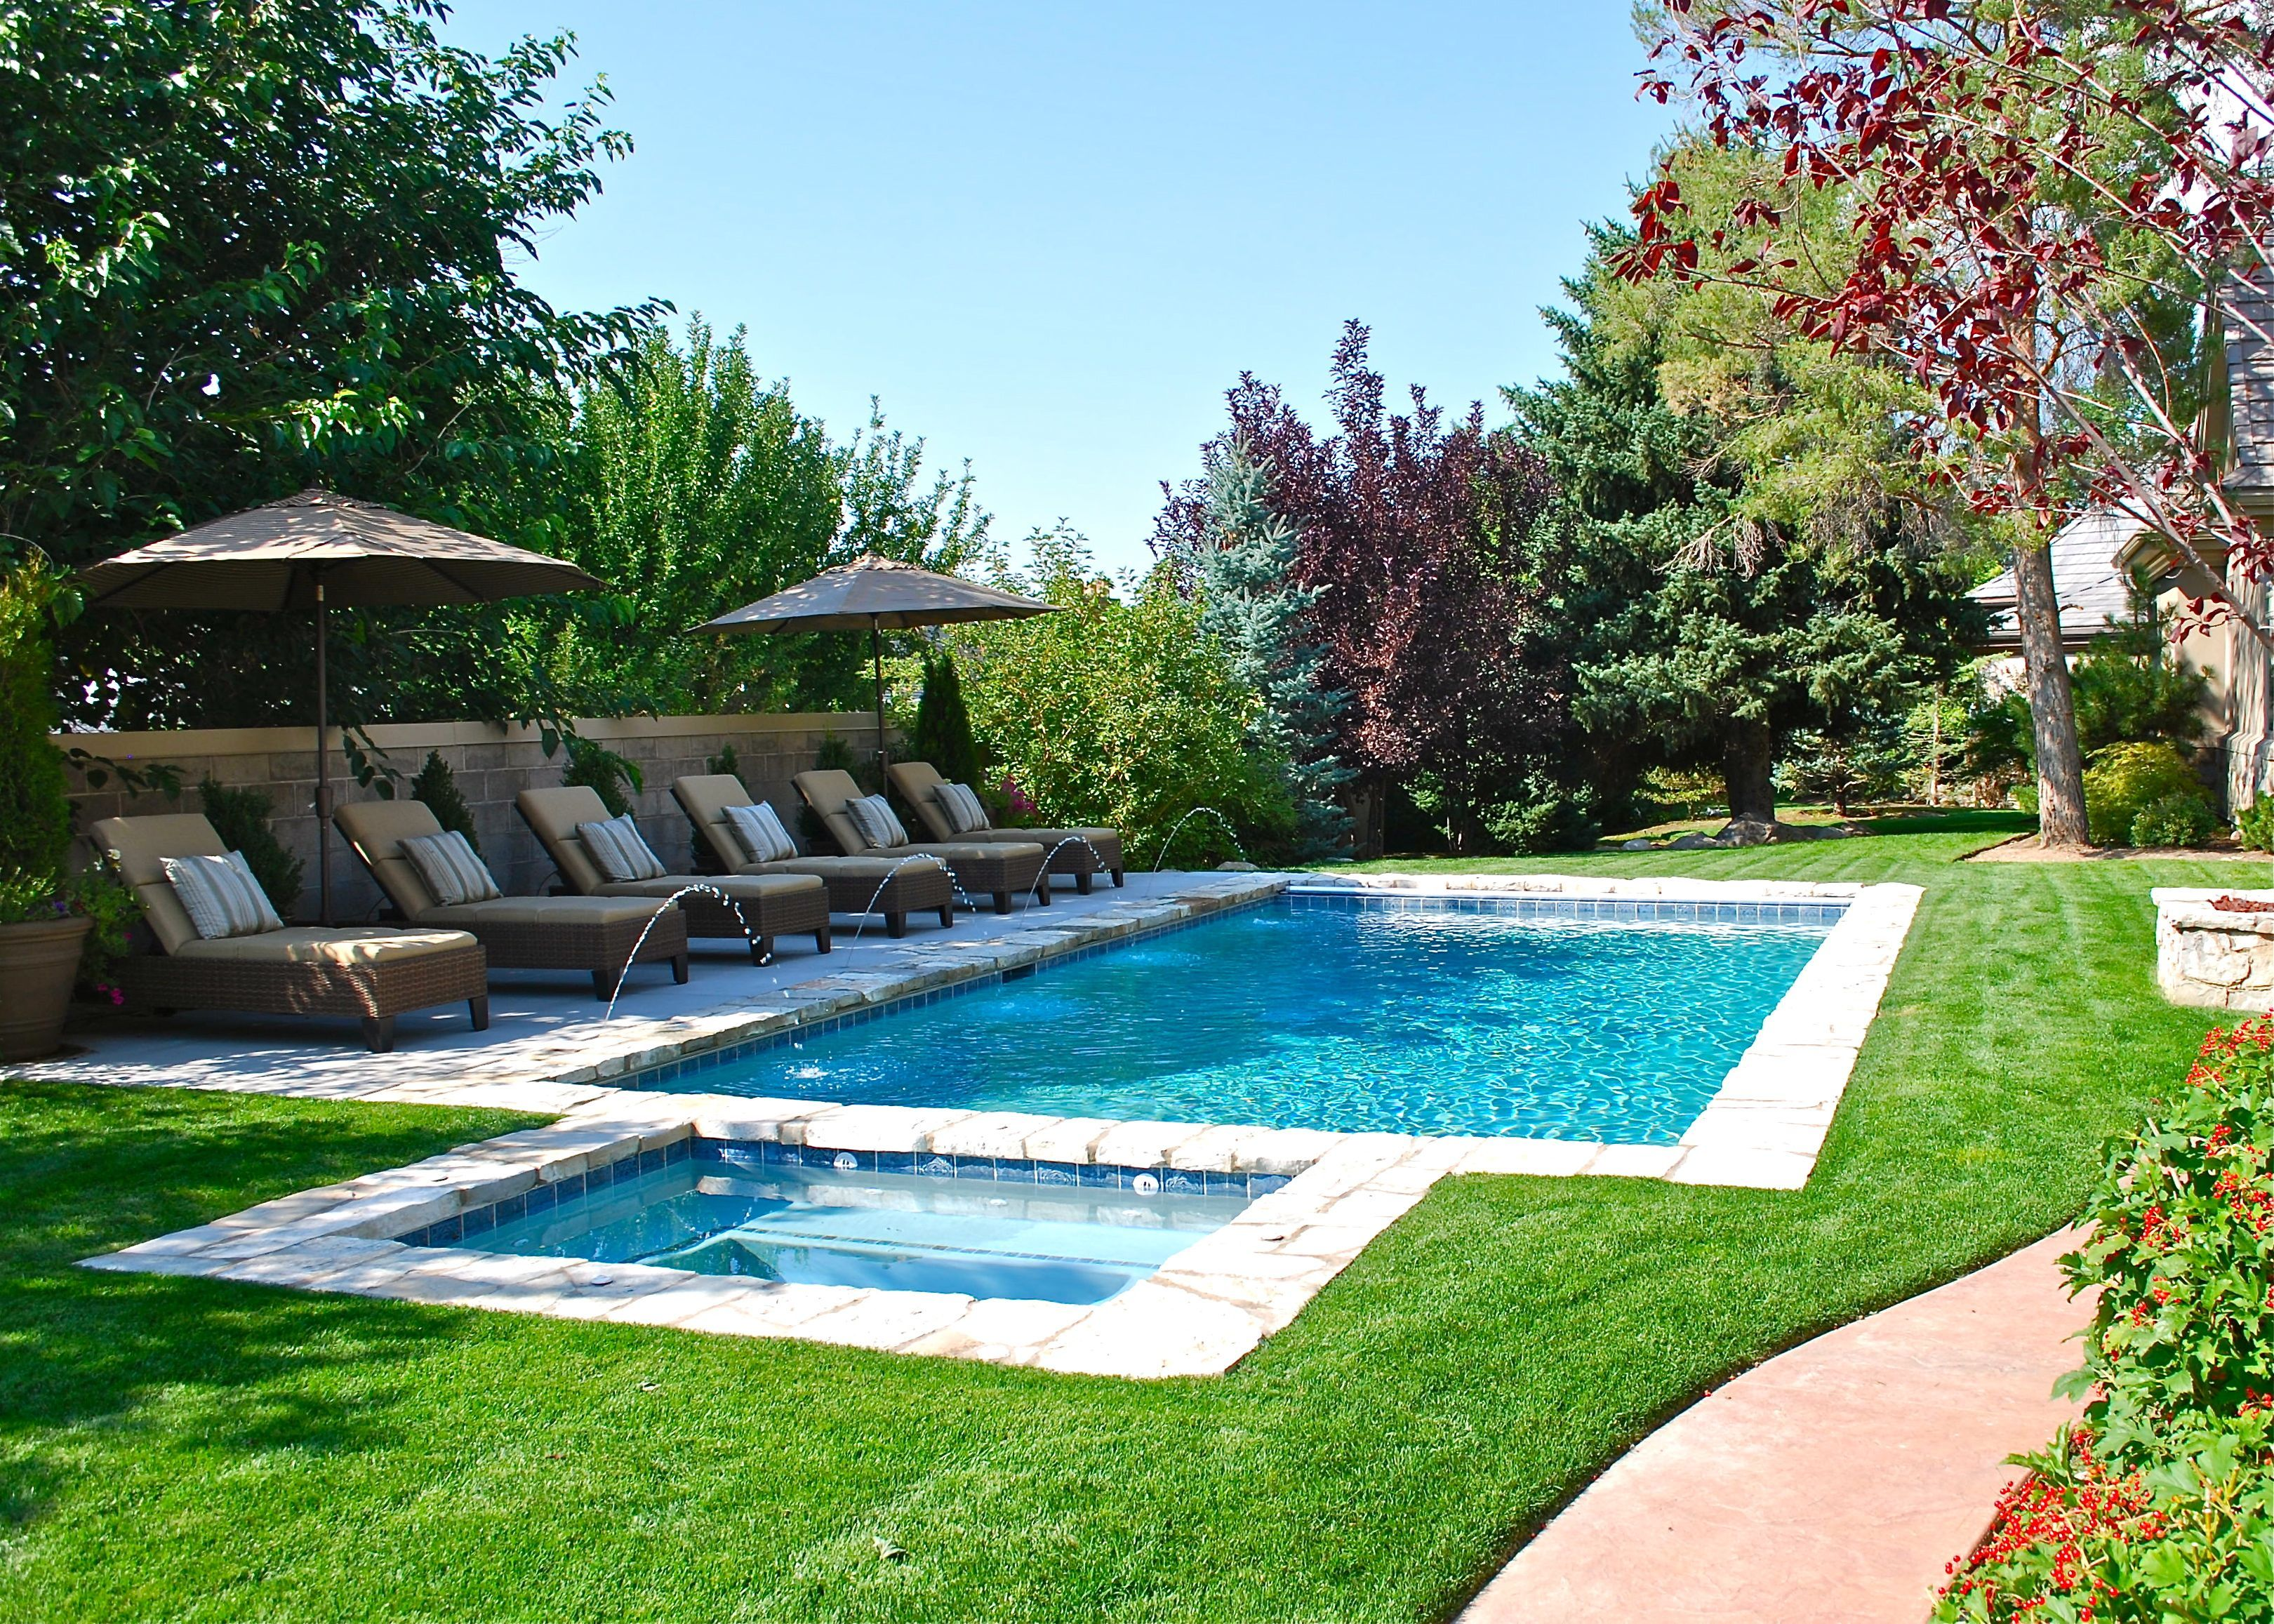 Backyard swimming pool with minimal decking deckjets and for Swimming pool ideas